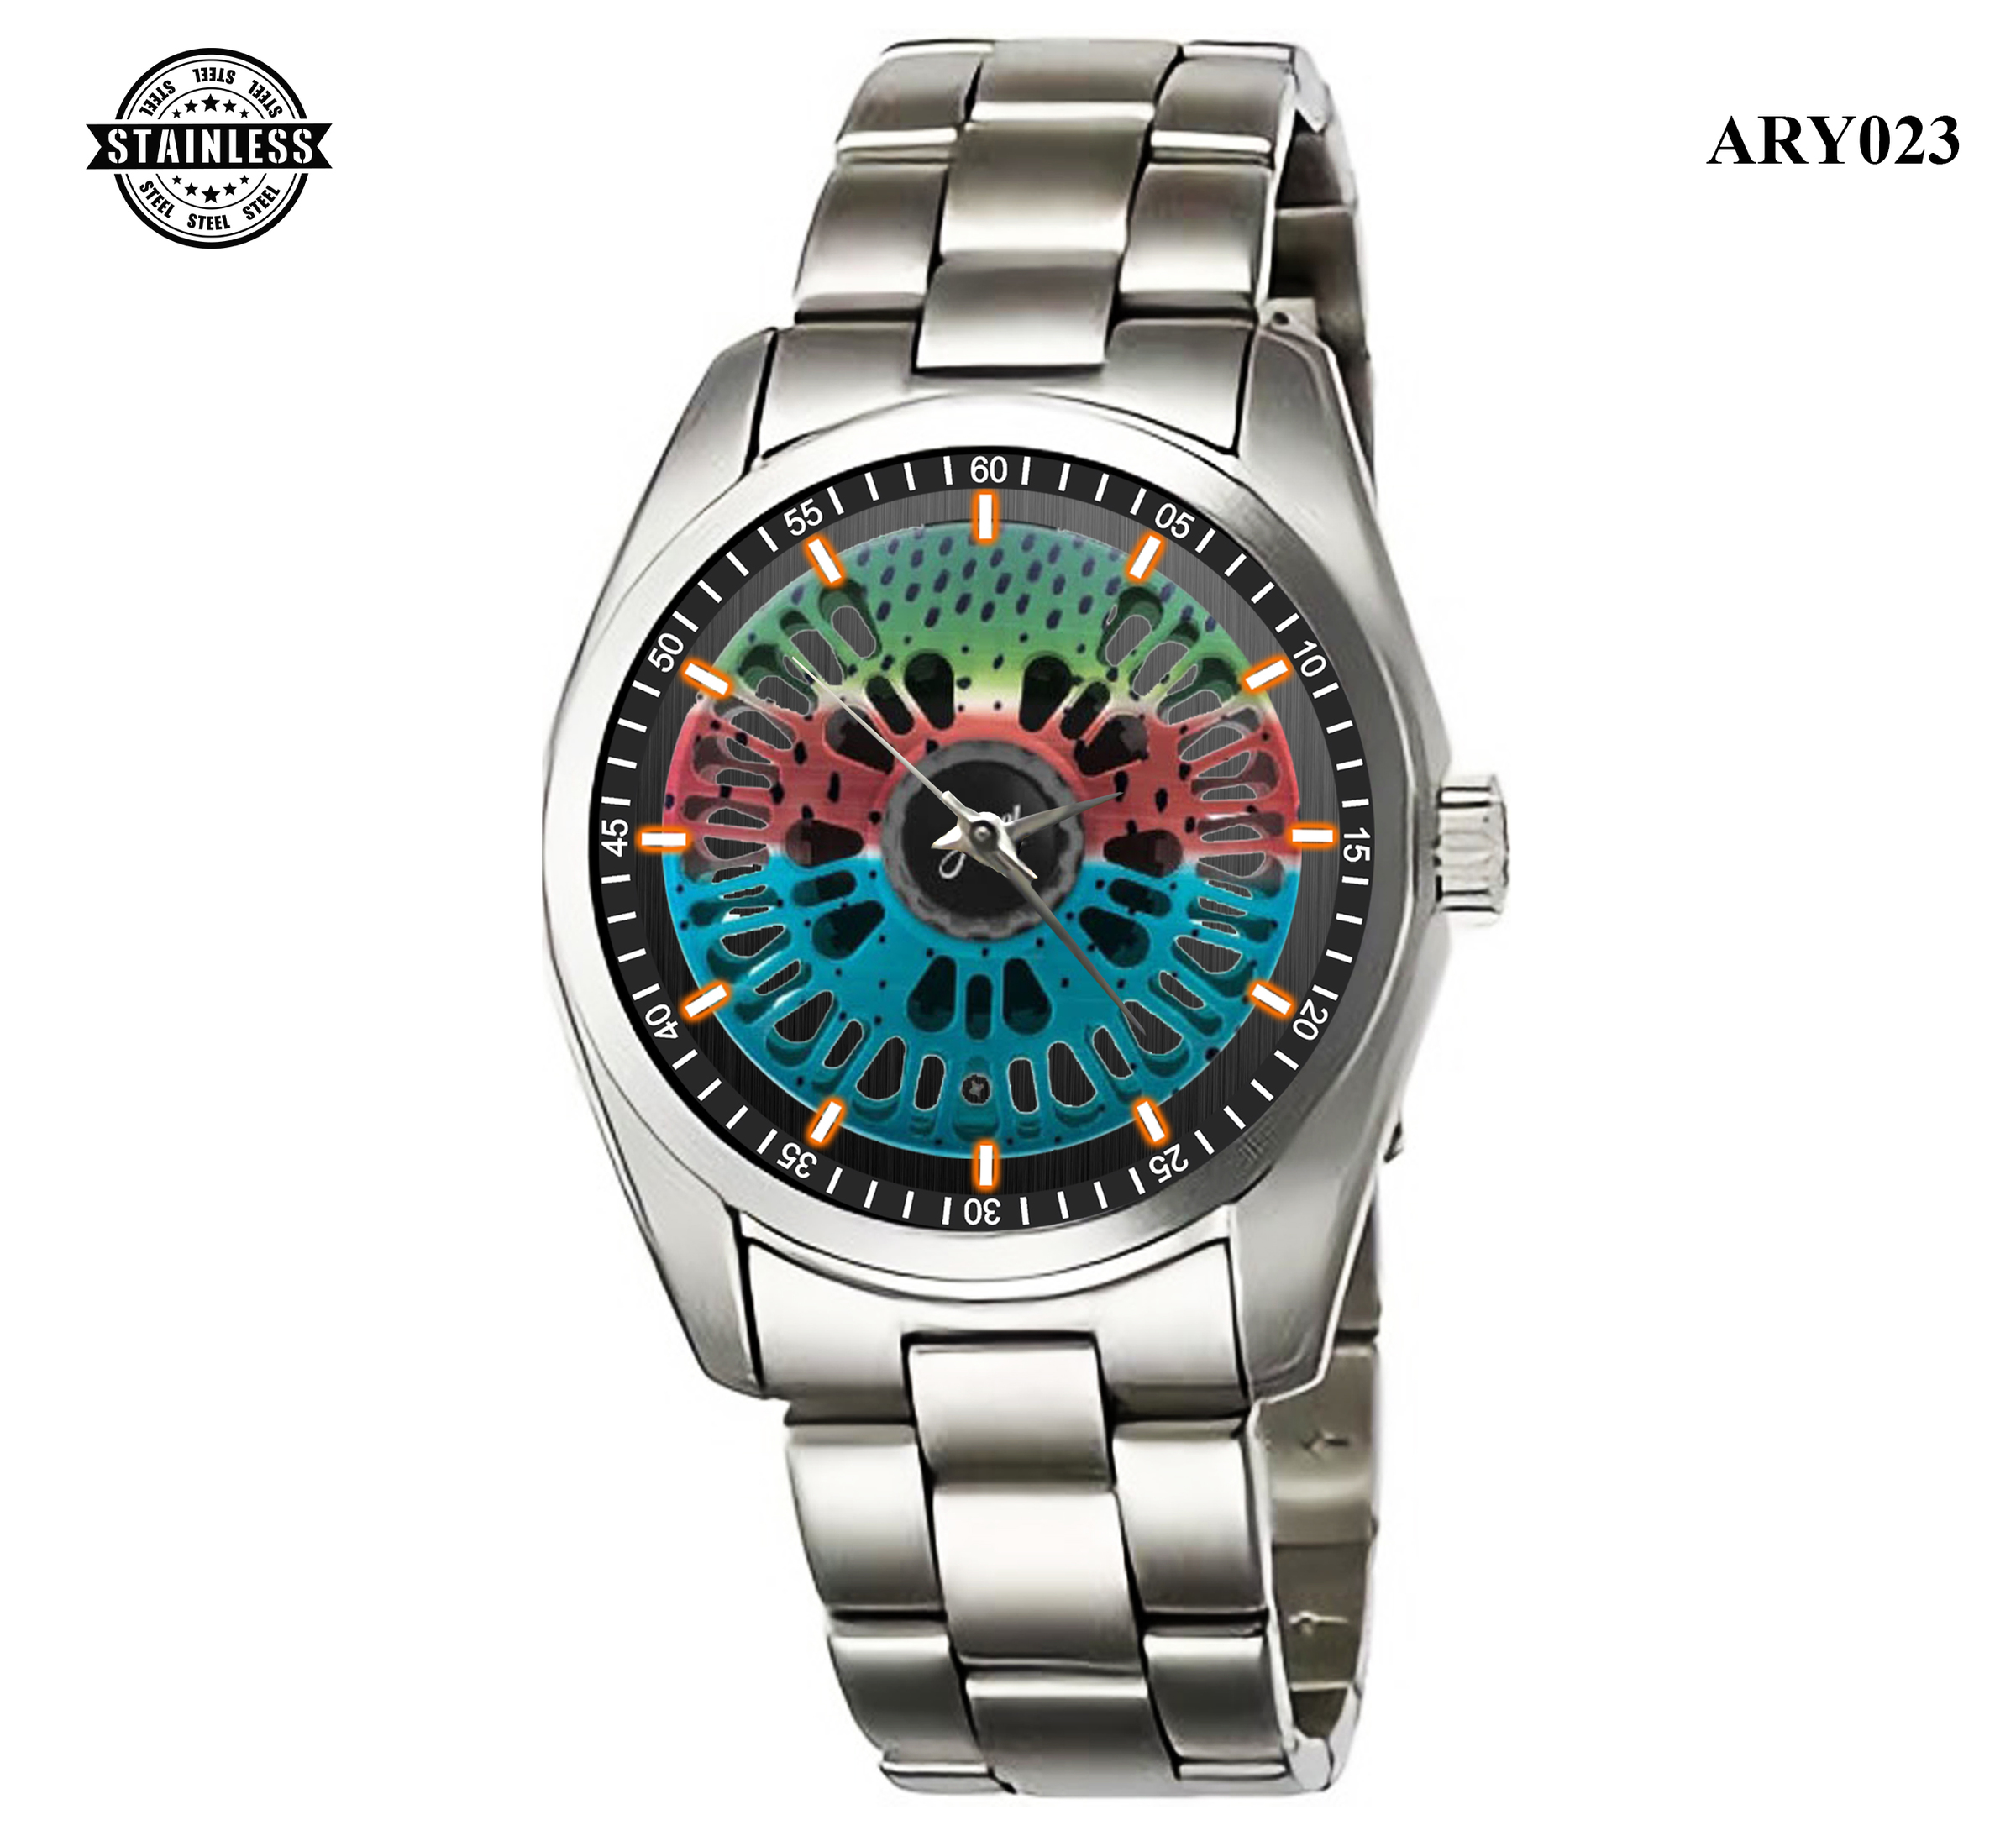 ARY023_1.Limited edition_Abel Super 5 Reel_Sport Metal Watches.jpg